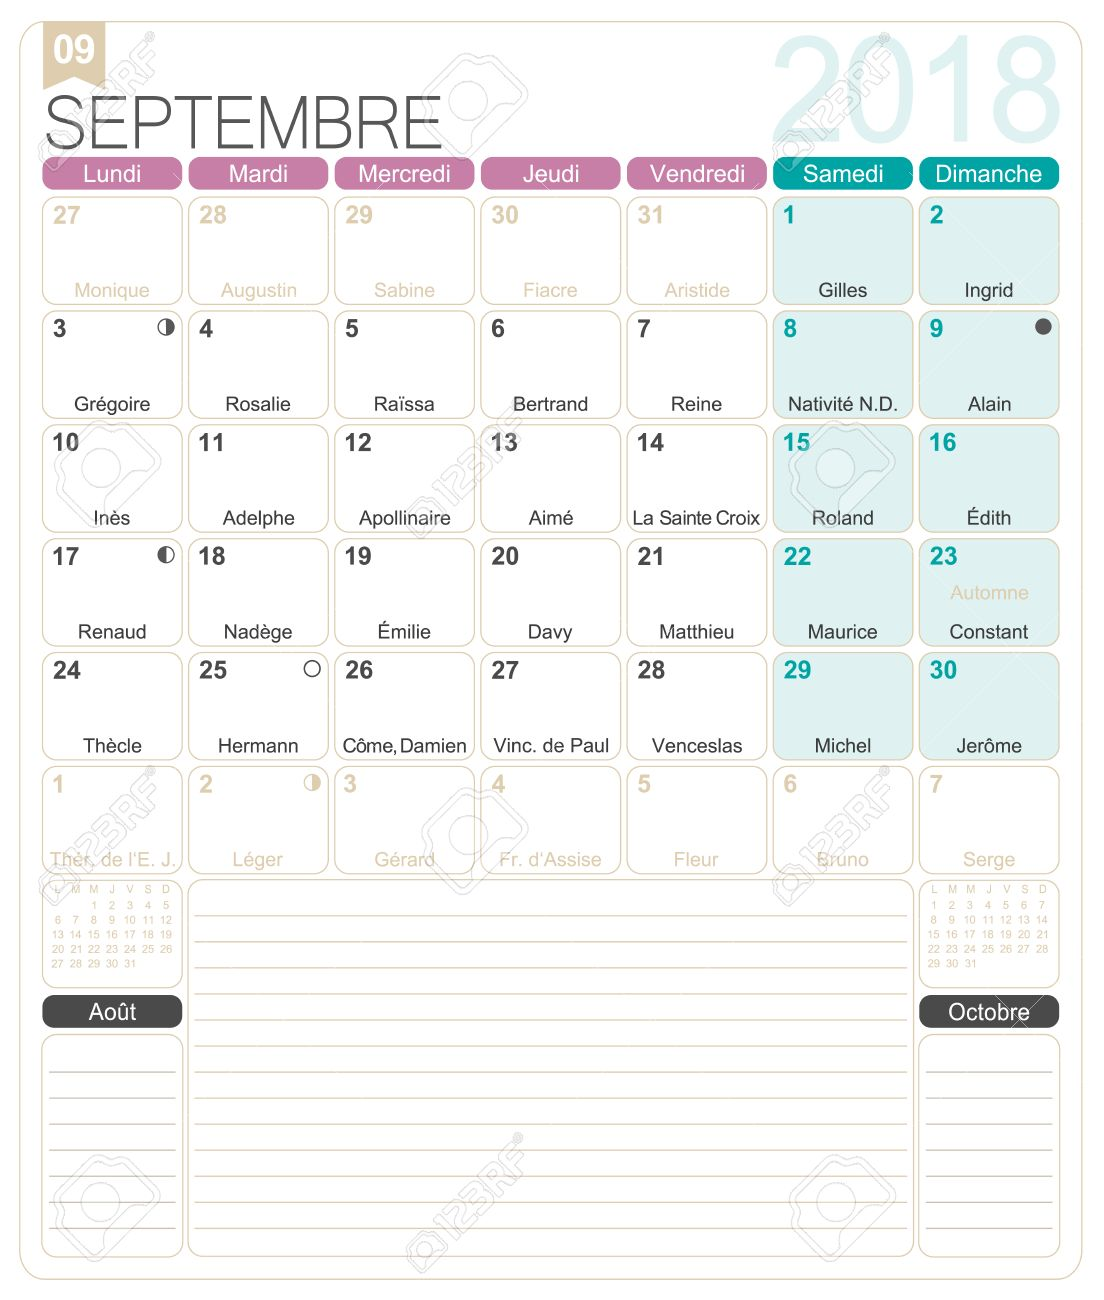 september 2018 french printable monthly calendar template including name days lunar phases and